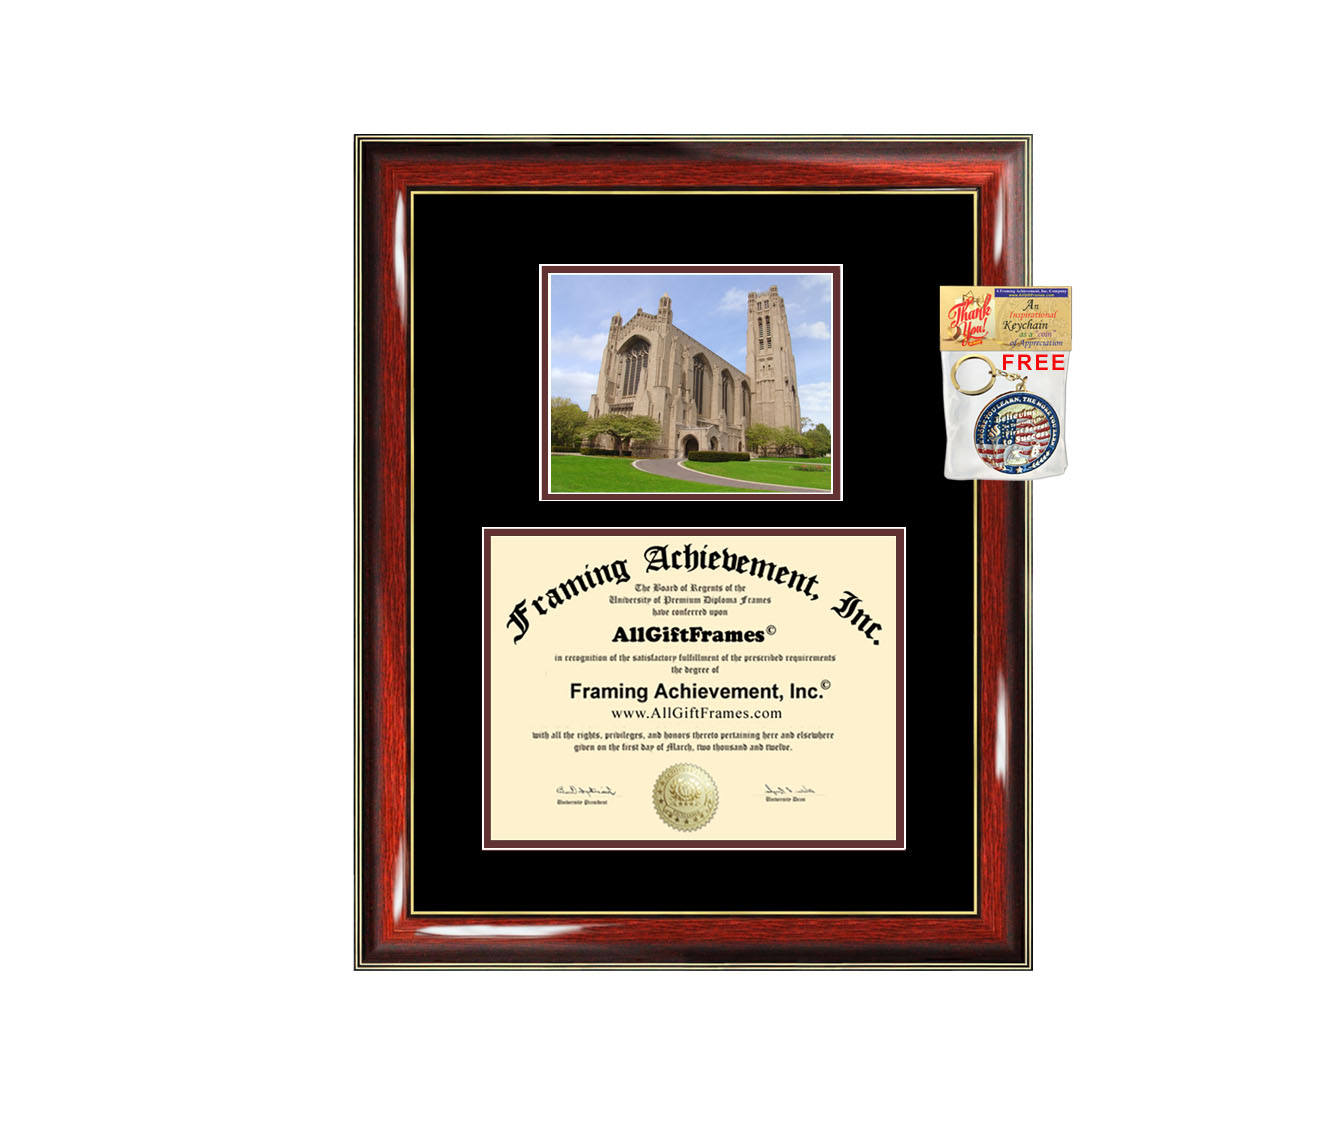 University of Chicago diploma frame campus photo certificate framing g